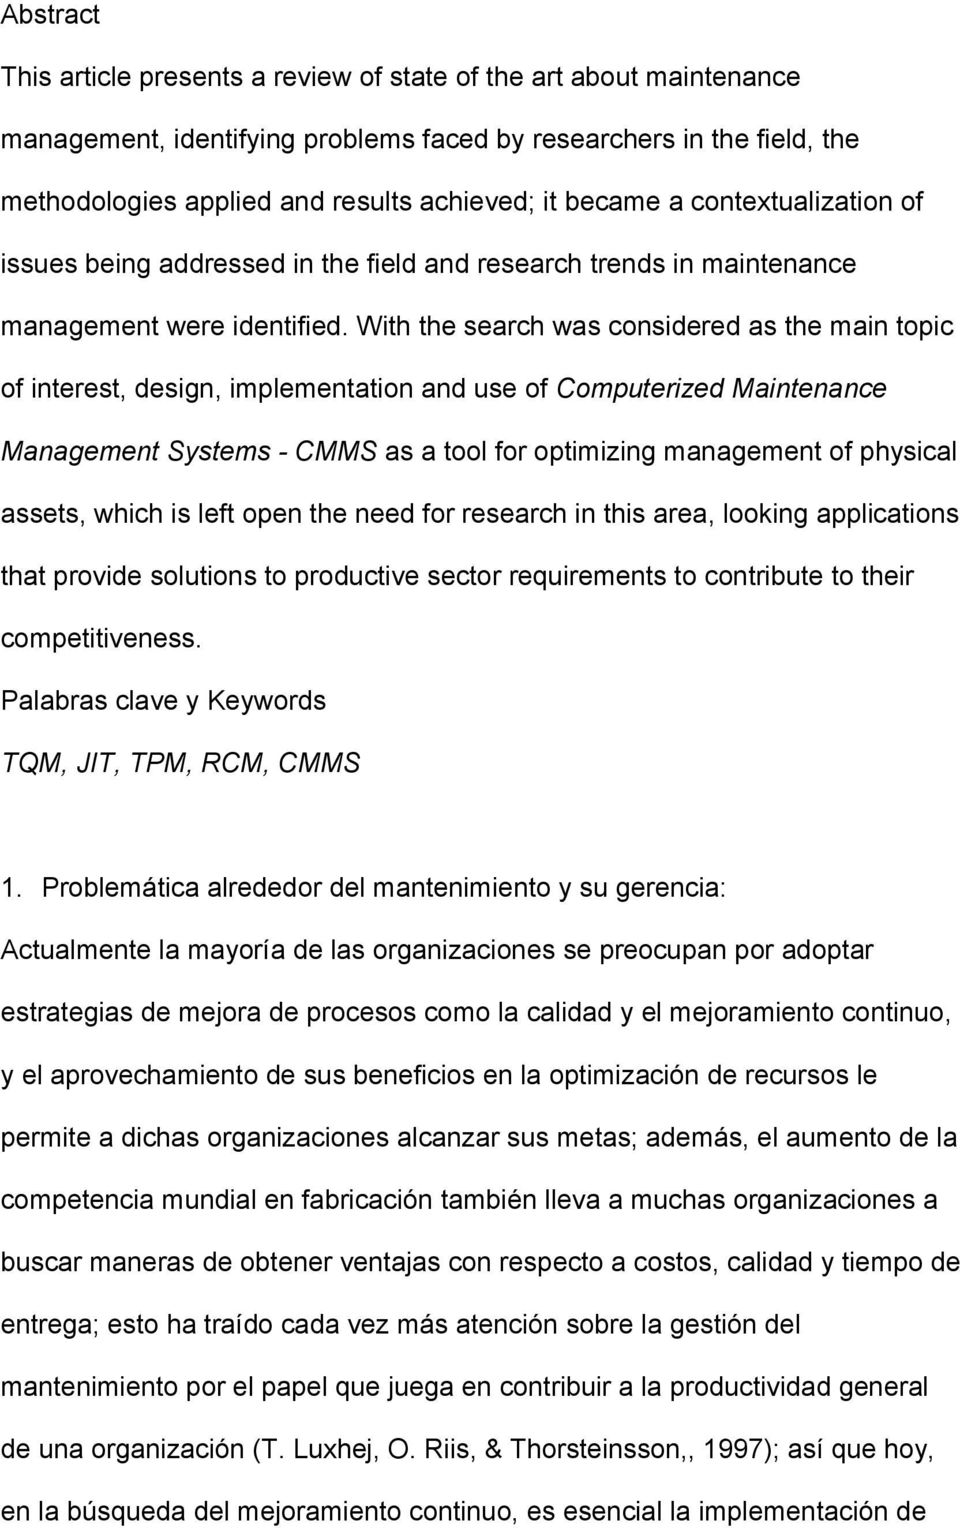 With the search was considered as the main topic of interest, design, implementation and use of Computerized Maintenance Management Systems - CMMS as a tool for optimizing management of physical